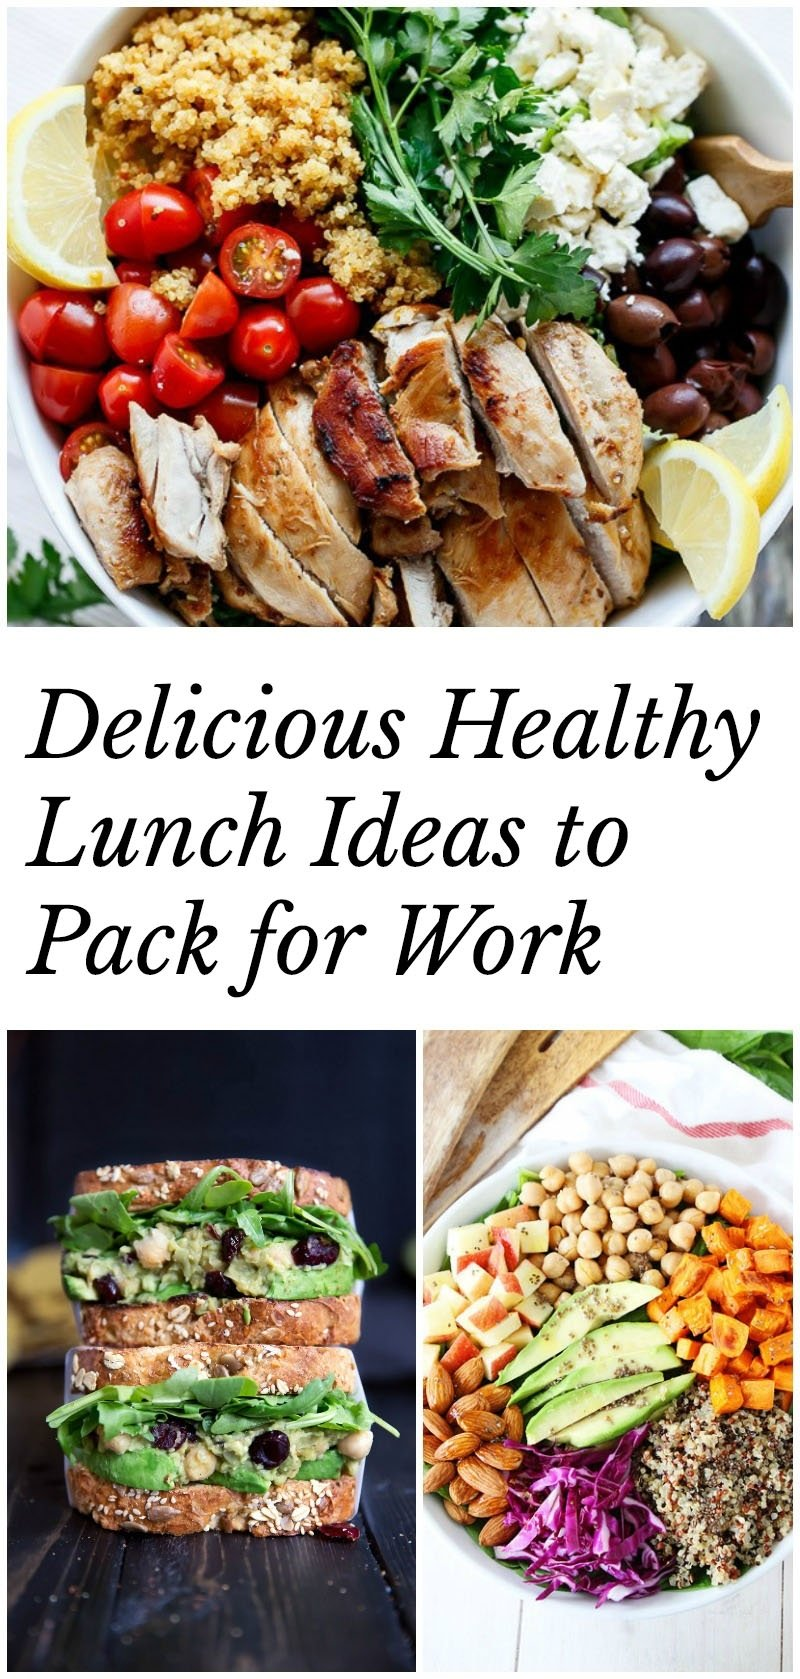 10 Beautiful Quick Healthy Lunch Ideas For Work healthy lunch ideas to pack for work 40 recipes 12 2020